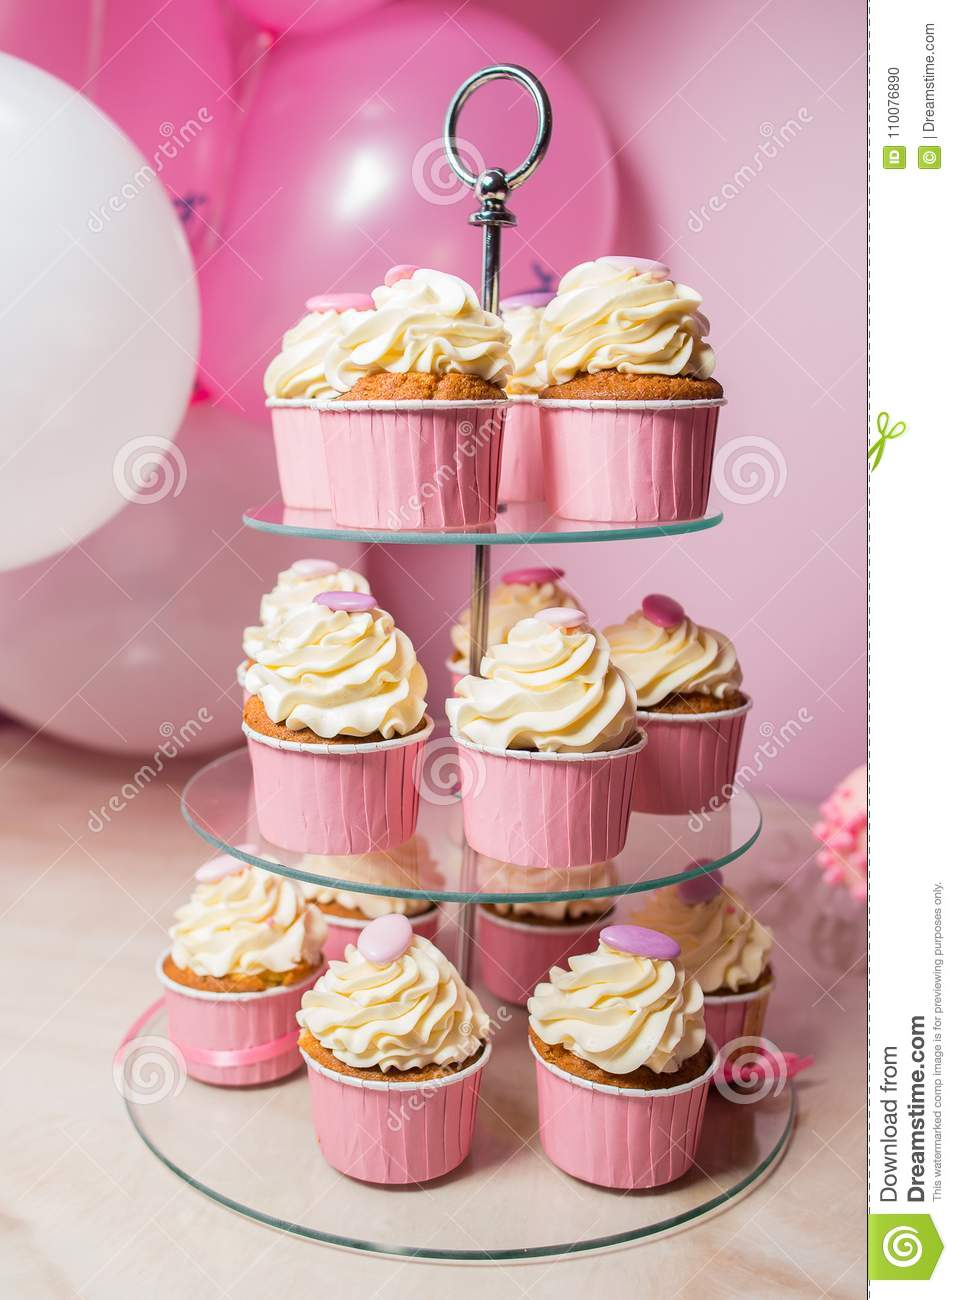 Cupcakes With Vanilla Cream On A Stand Stock Photo Image Of